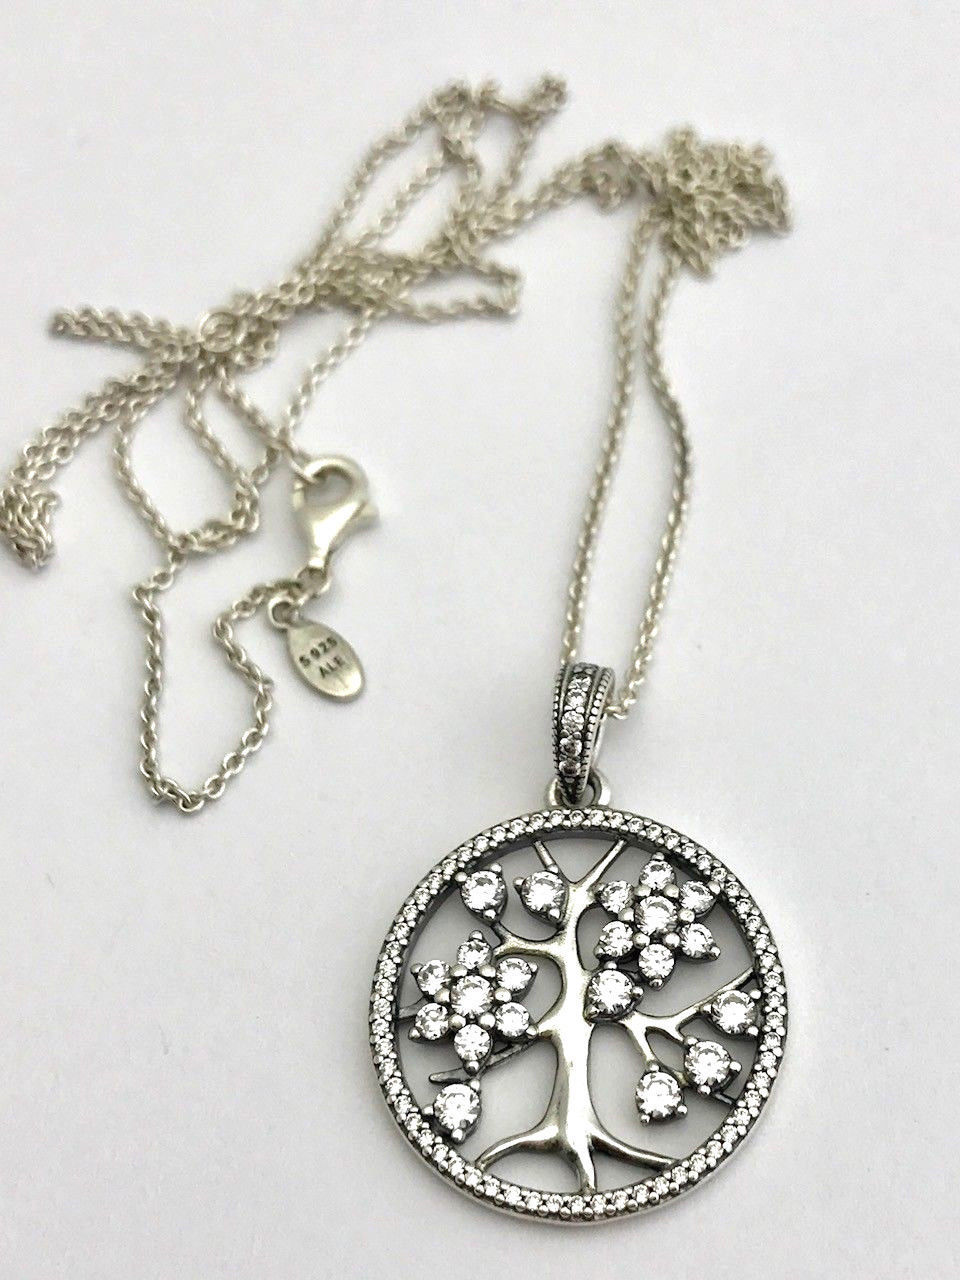 8f47b44008ecfc Authentic Pandora Family Tree Necklace, and 50 similar items. S l1600